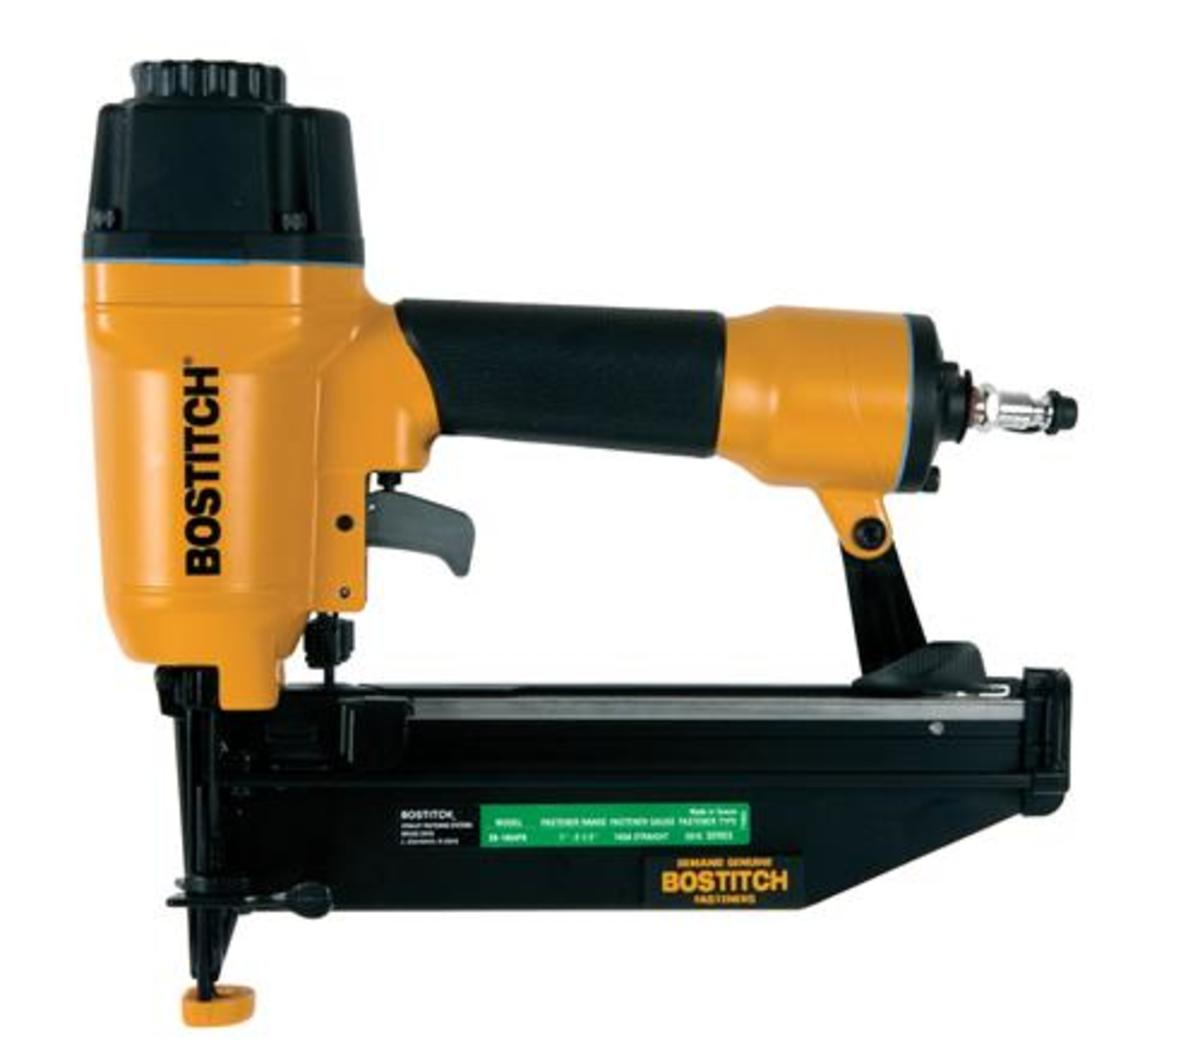 Differences between Air or Pneumatic Powered Nail Guns and Gas Powered Nailers